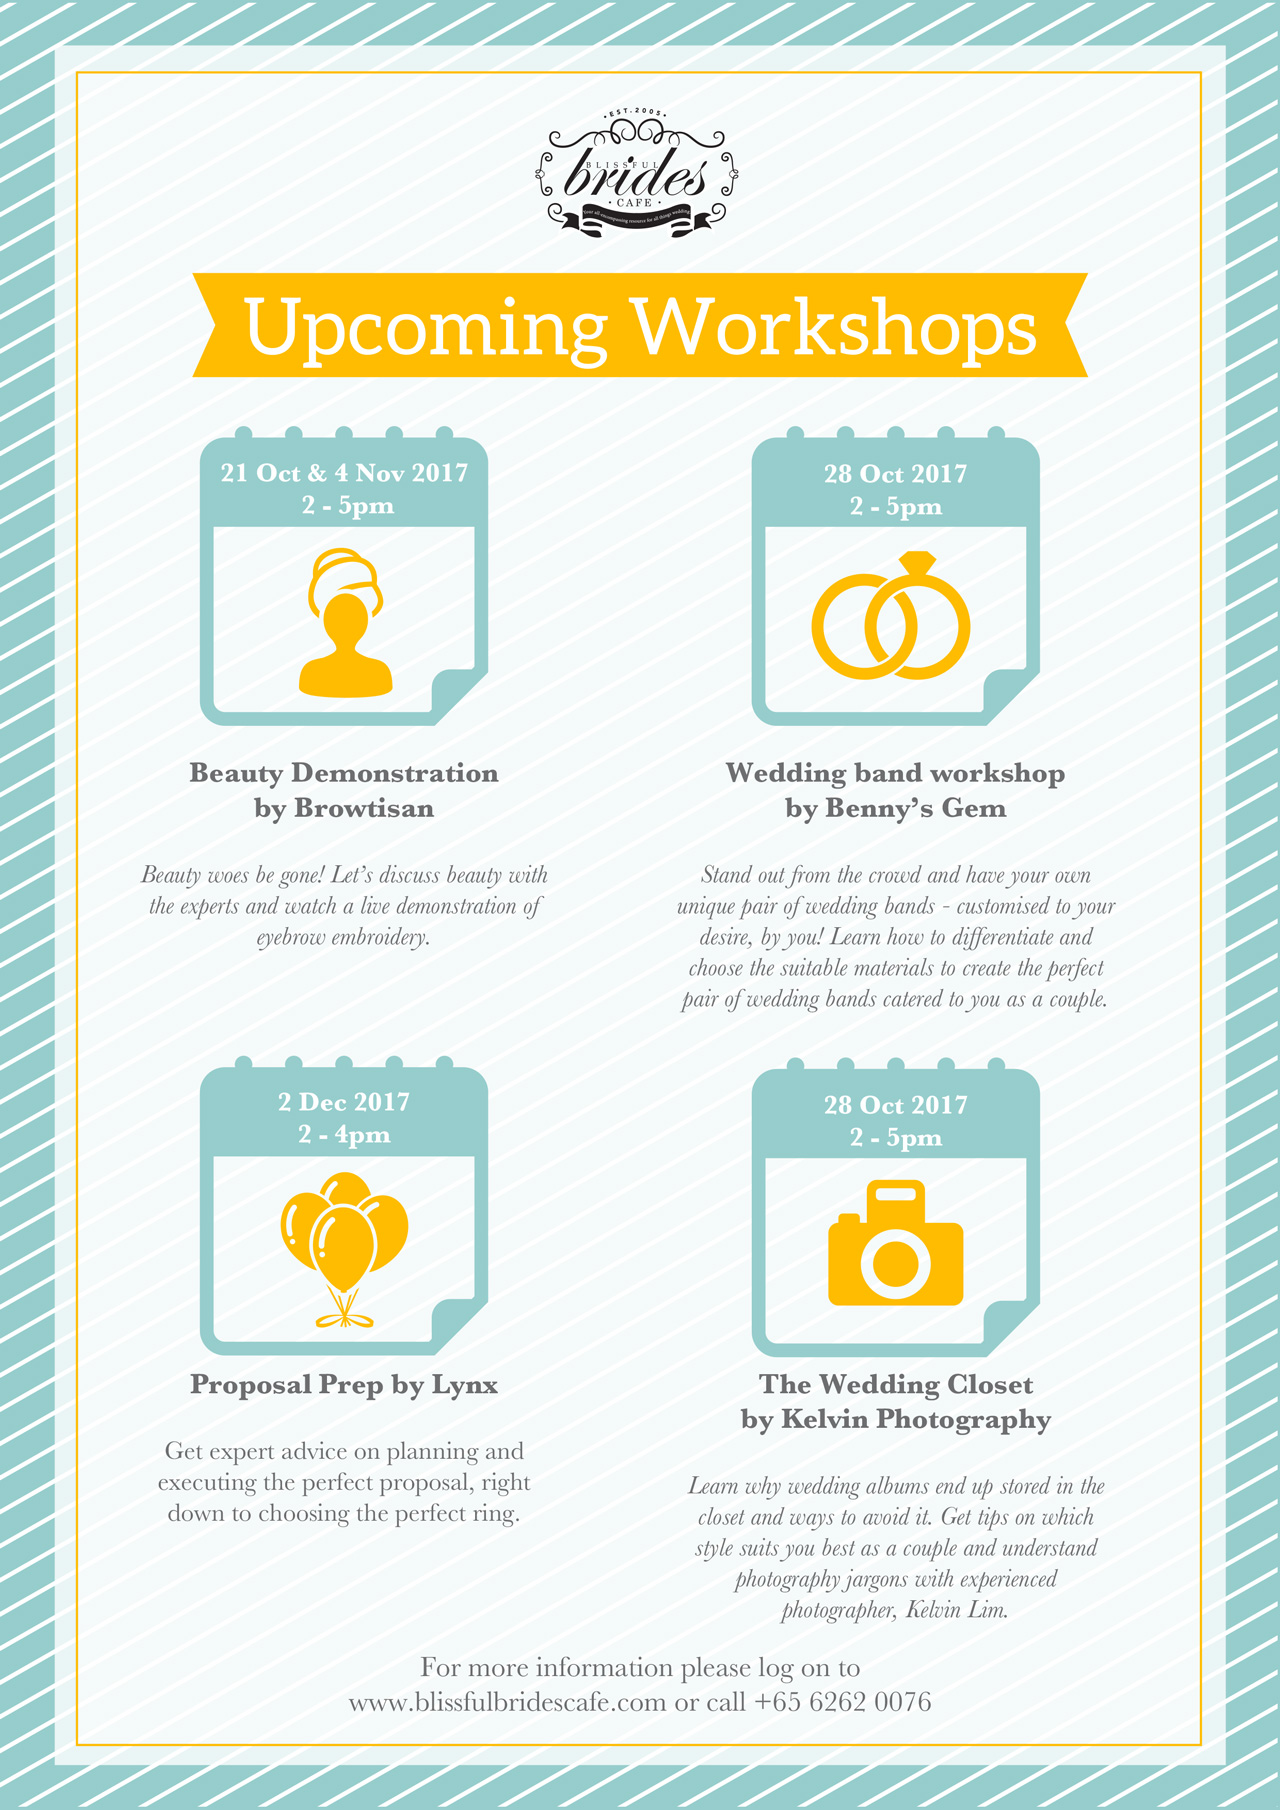 Blissful Brides Cafe workshoo events